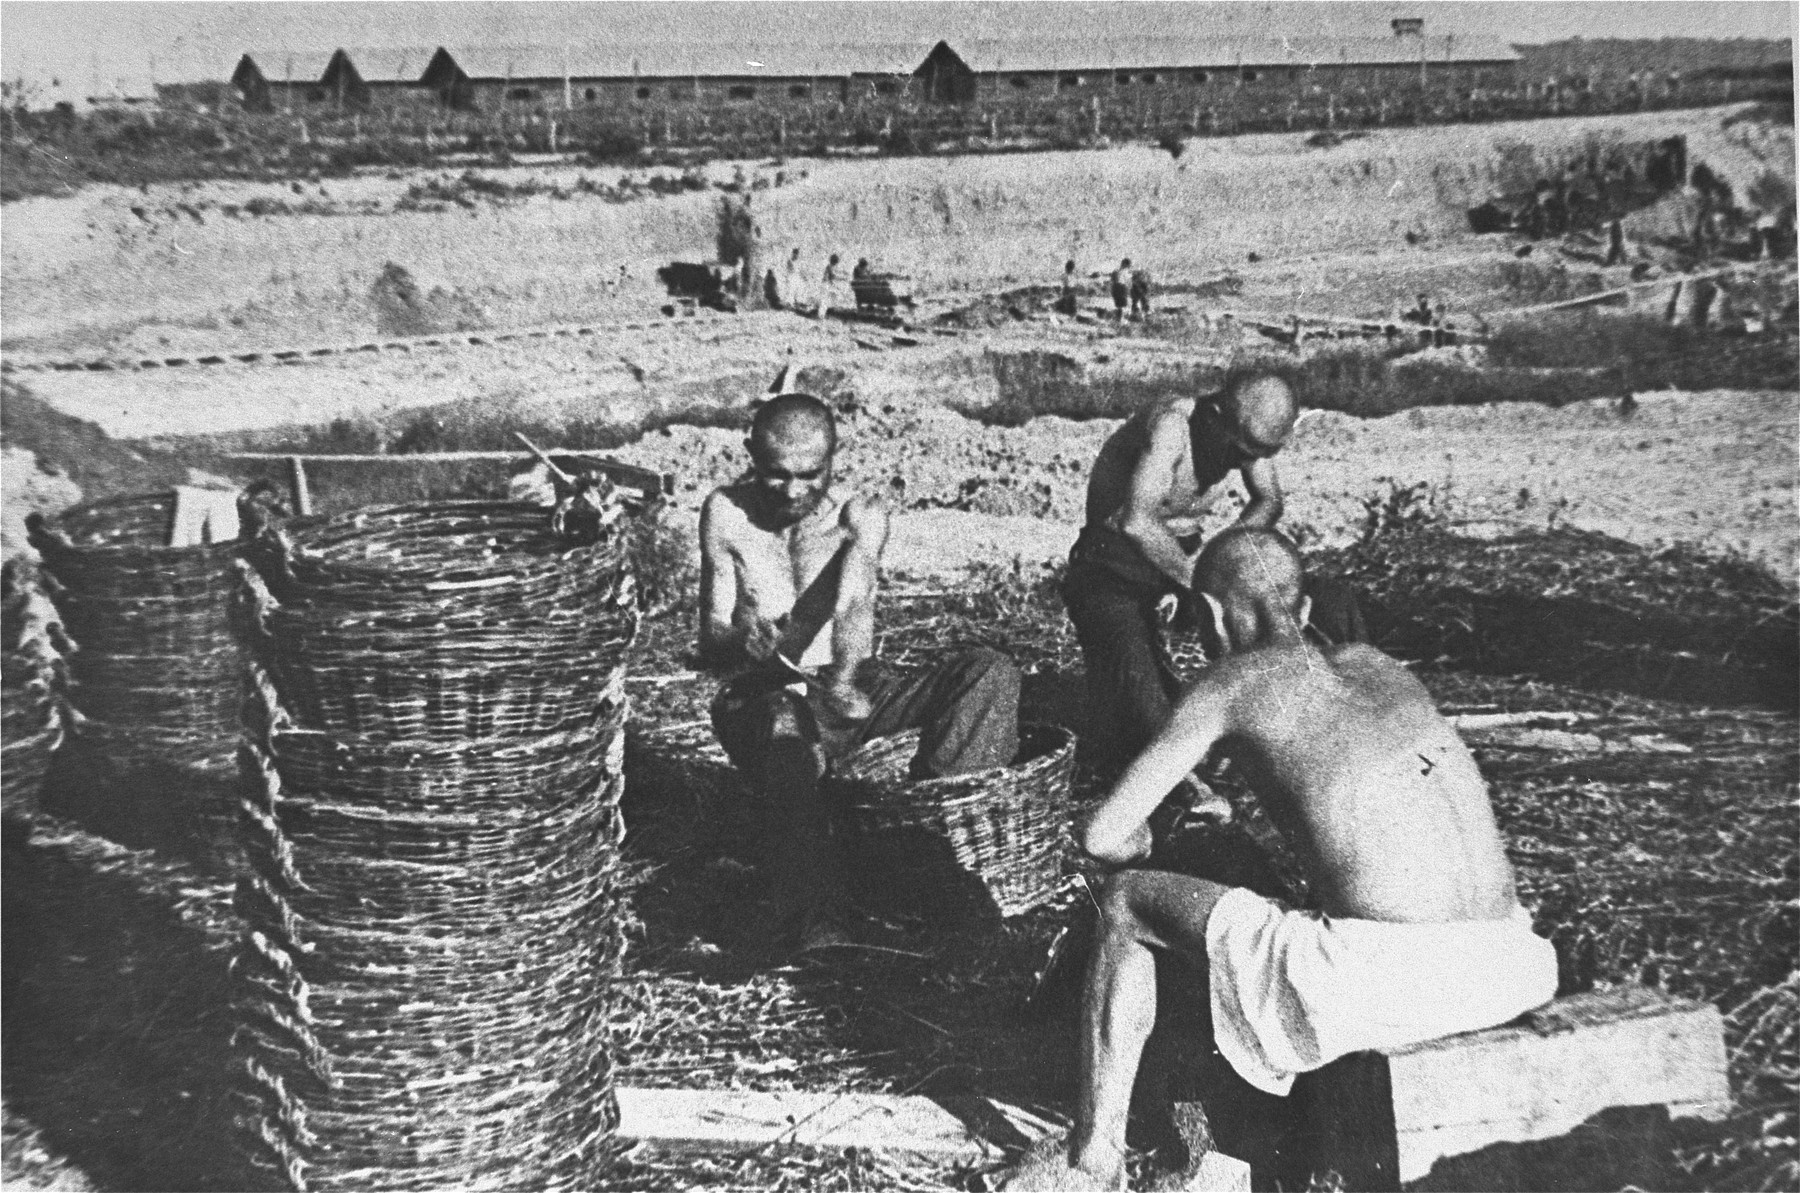 Prisoners at forced labor weaving baskets [possibly at one of the Jasenovac concentration camps].